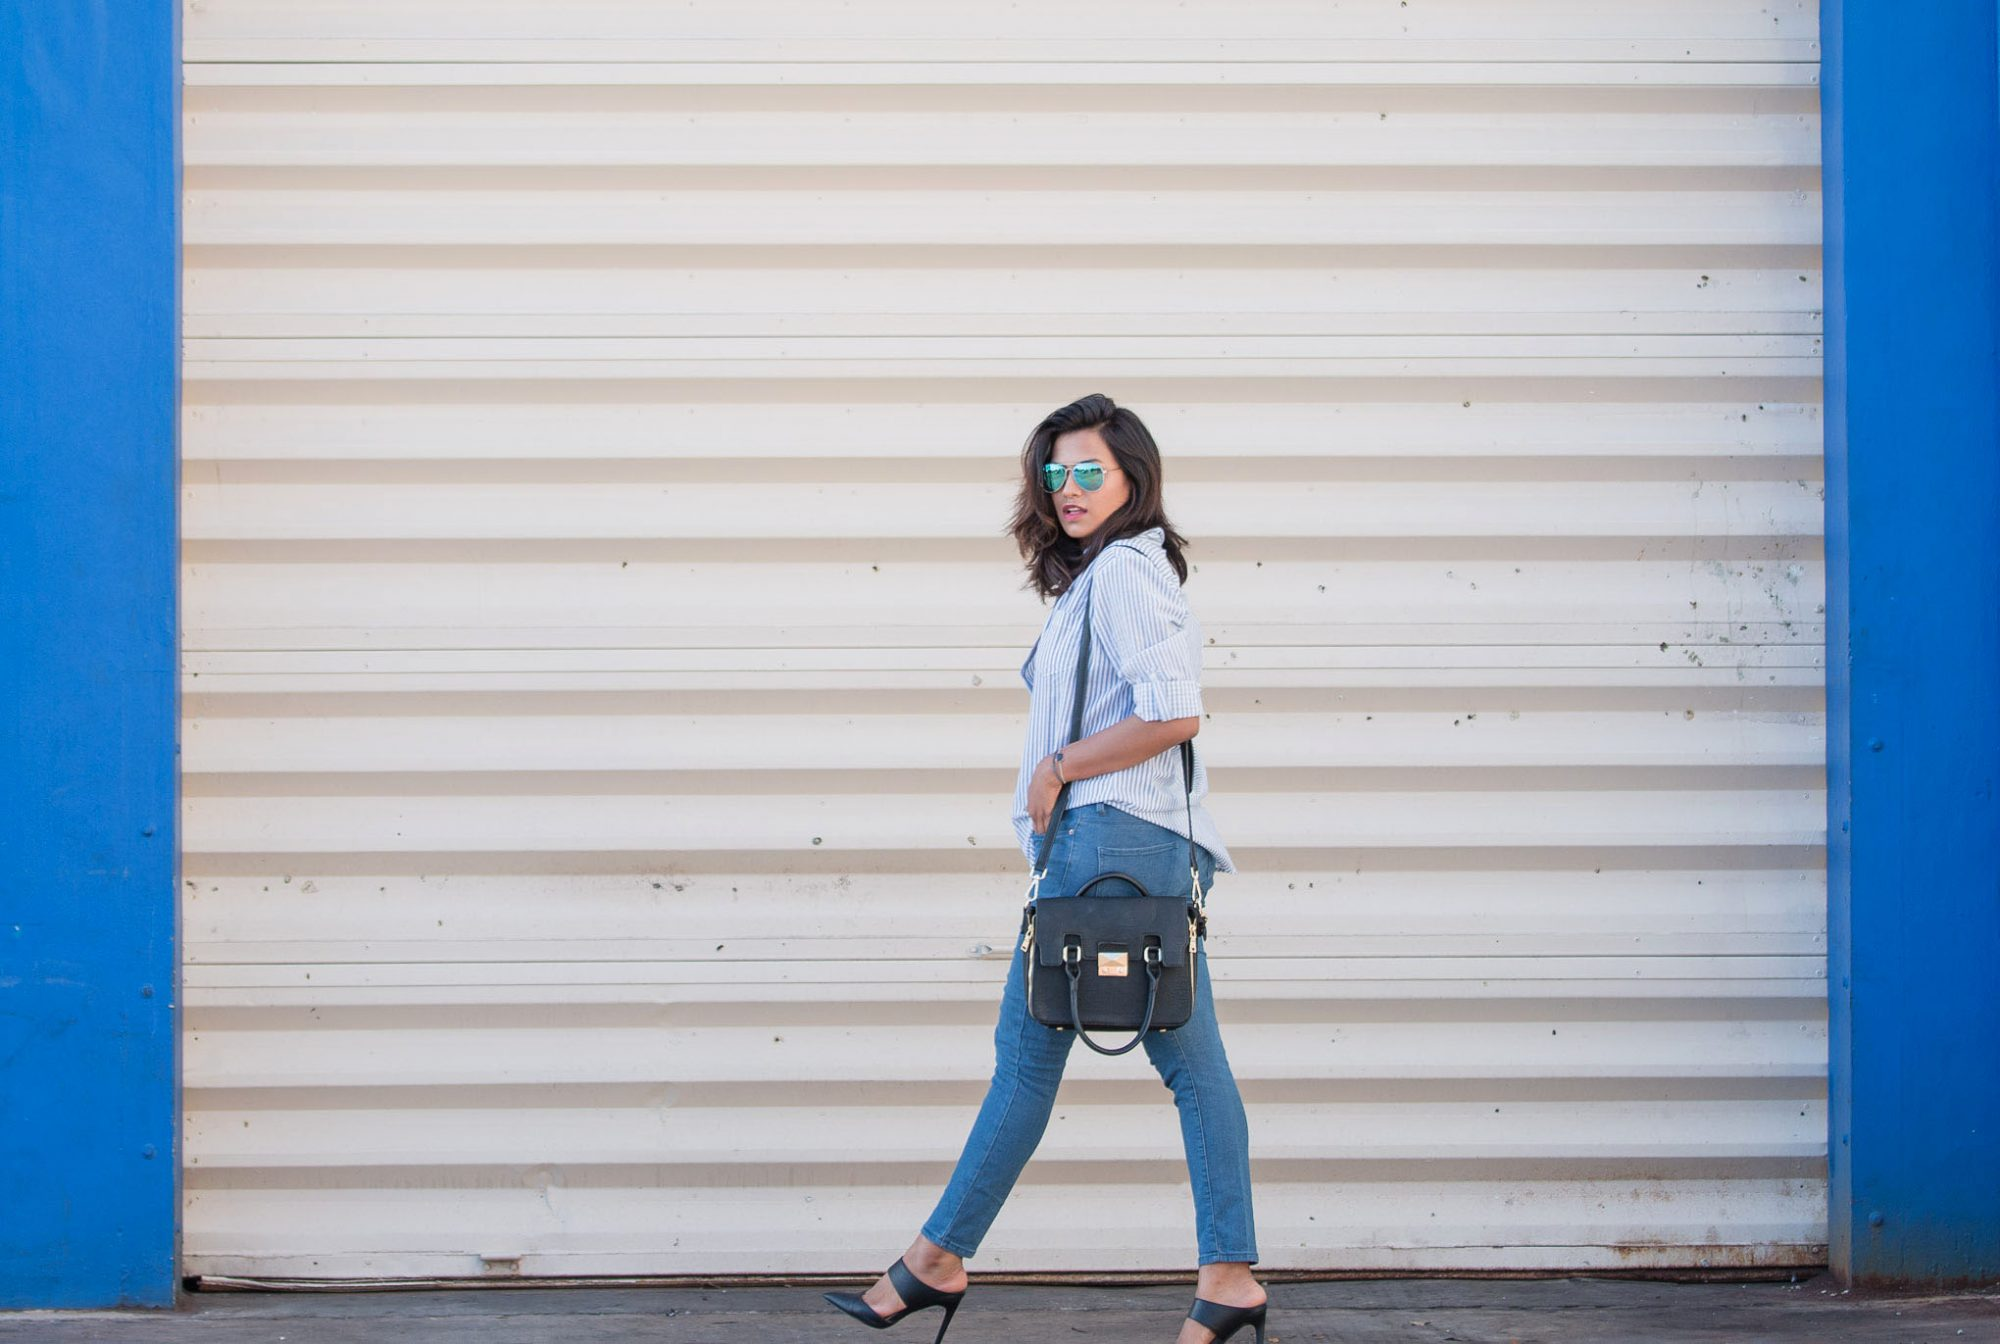 Miami Fashion Blogge Chic Stylista Casual OOTD